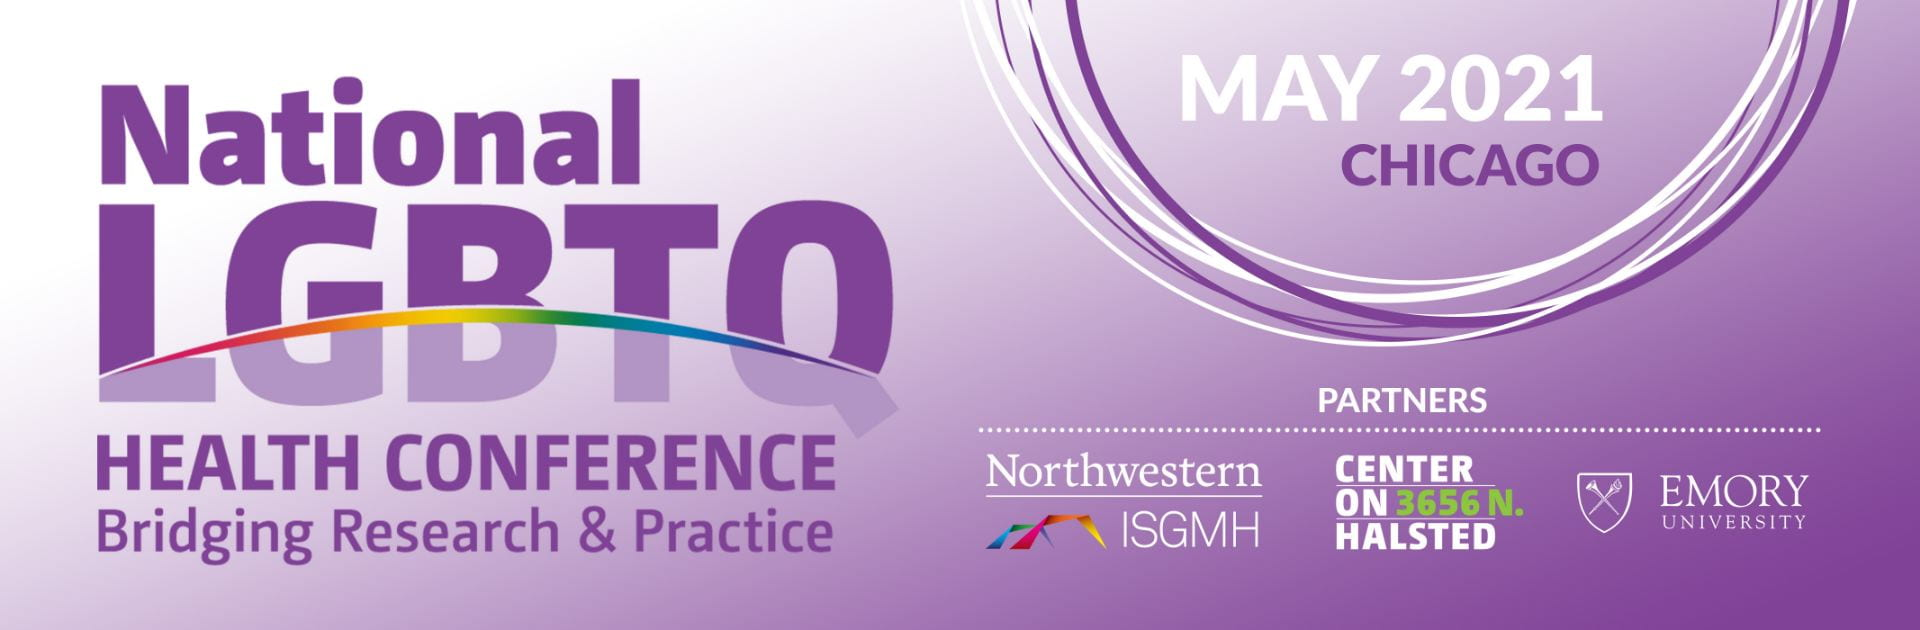 National LGBTQ Health Conference: Bridging Research and Practice, May 2021 Chicago